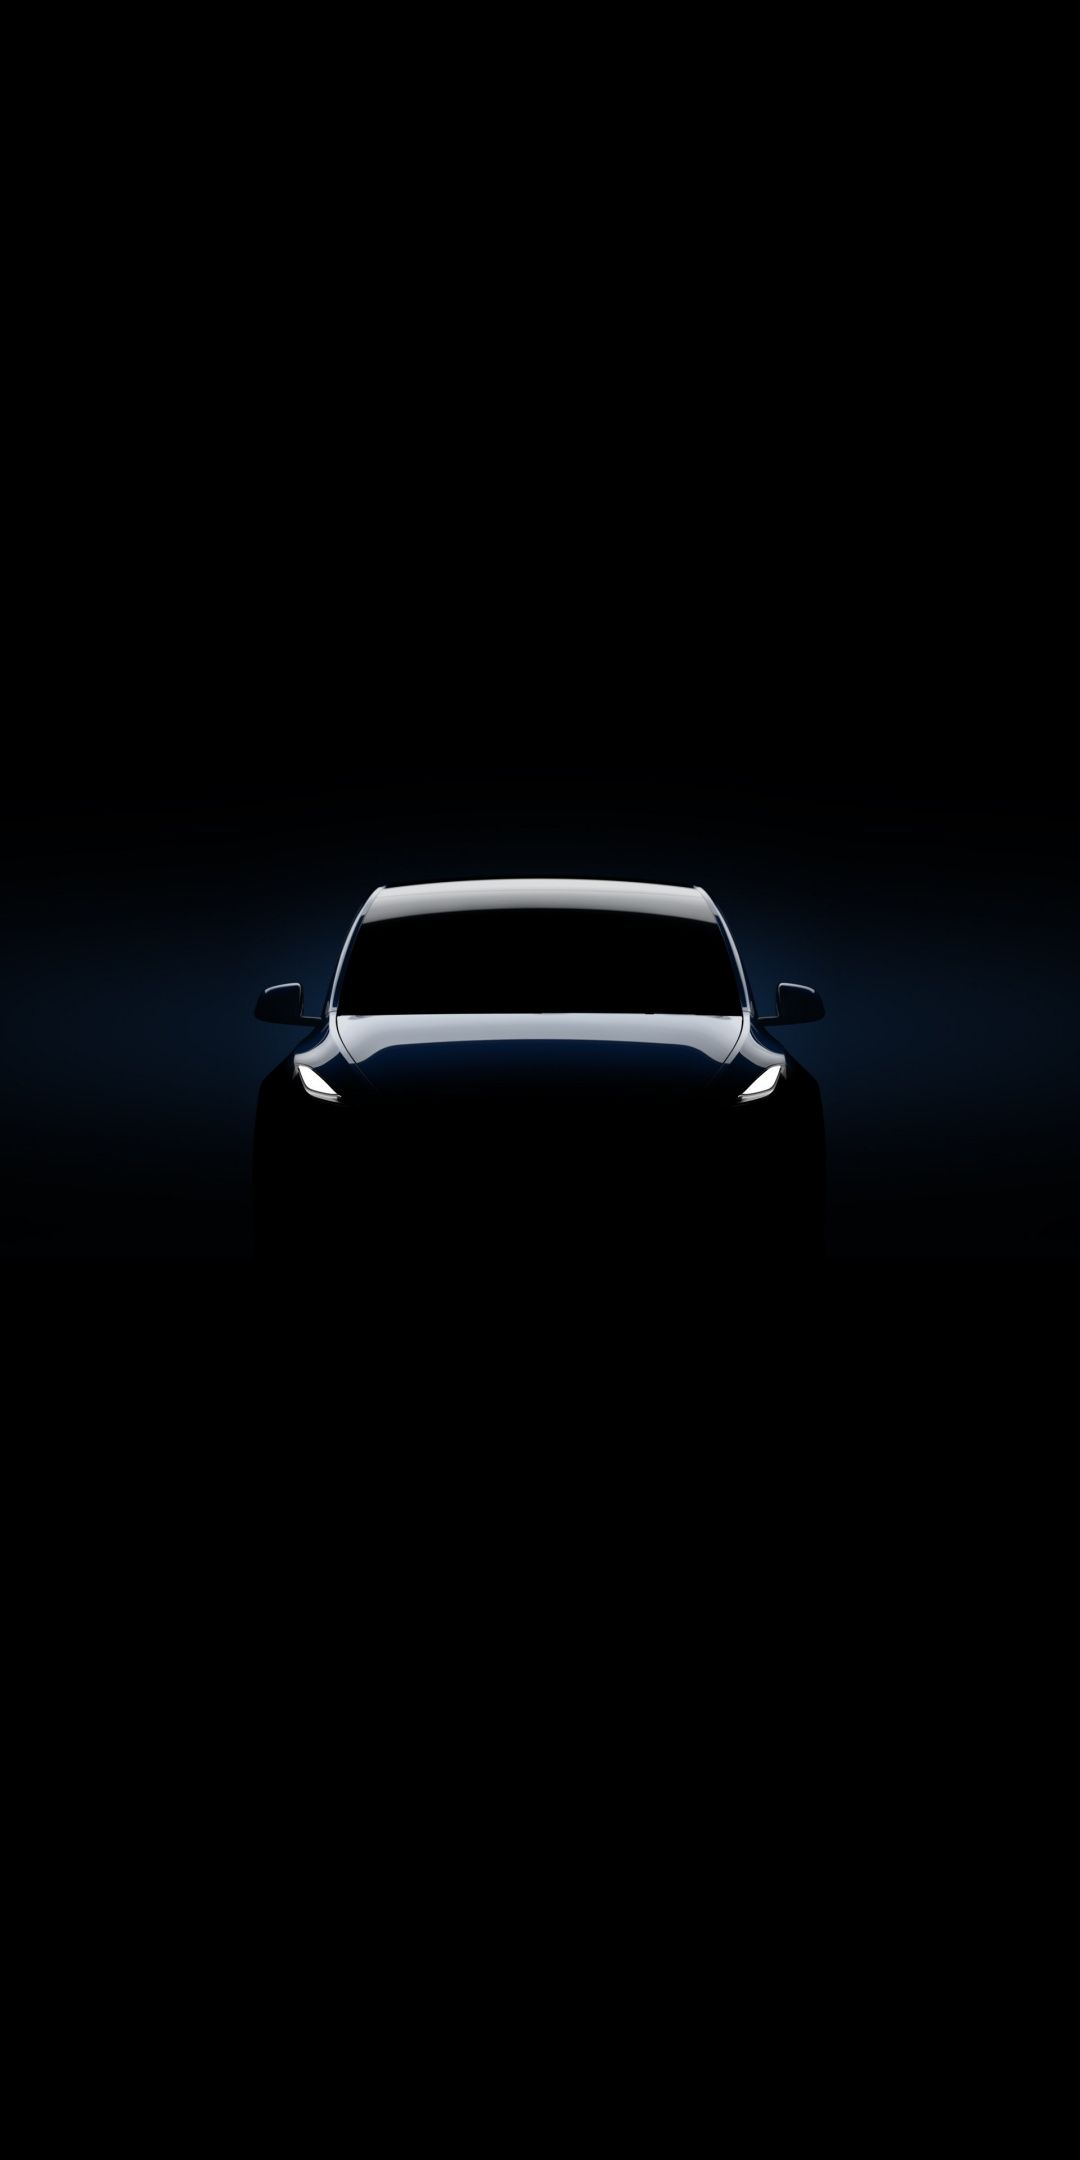 2019 Tesla Model Y Dark Minimal 1080x2160 Wallpaper Tesla Tesla Model Iphone Wallpaper Ocean